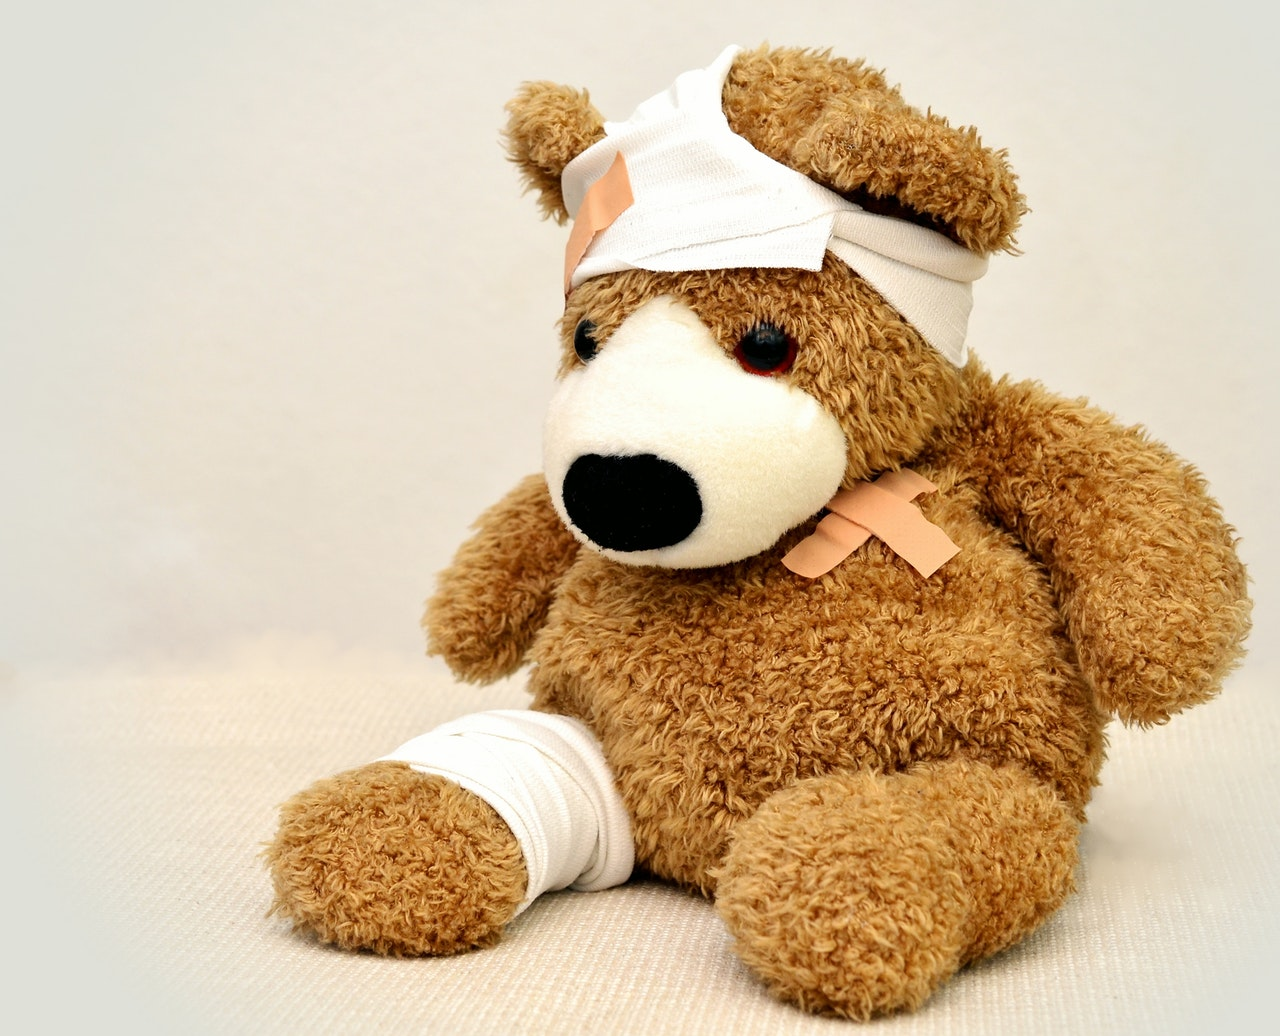 patched up teddy bear with bandages